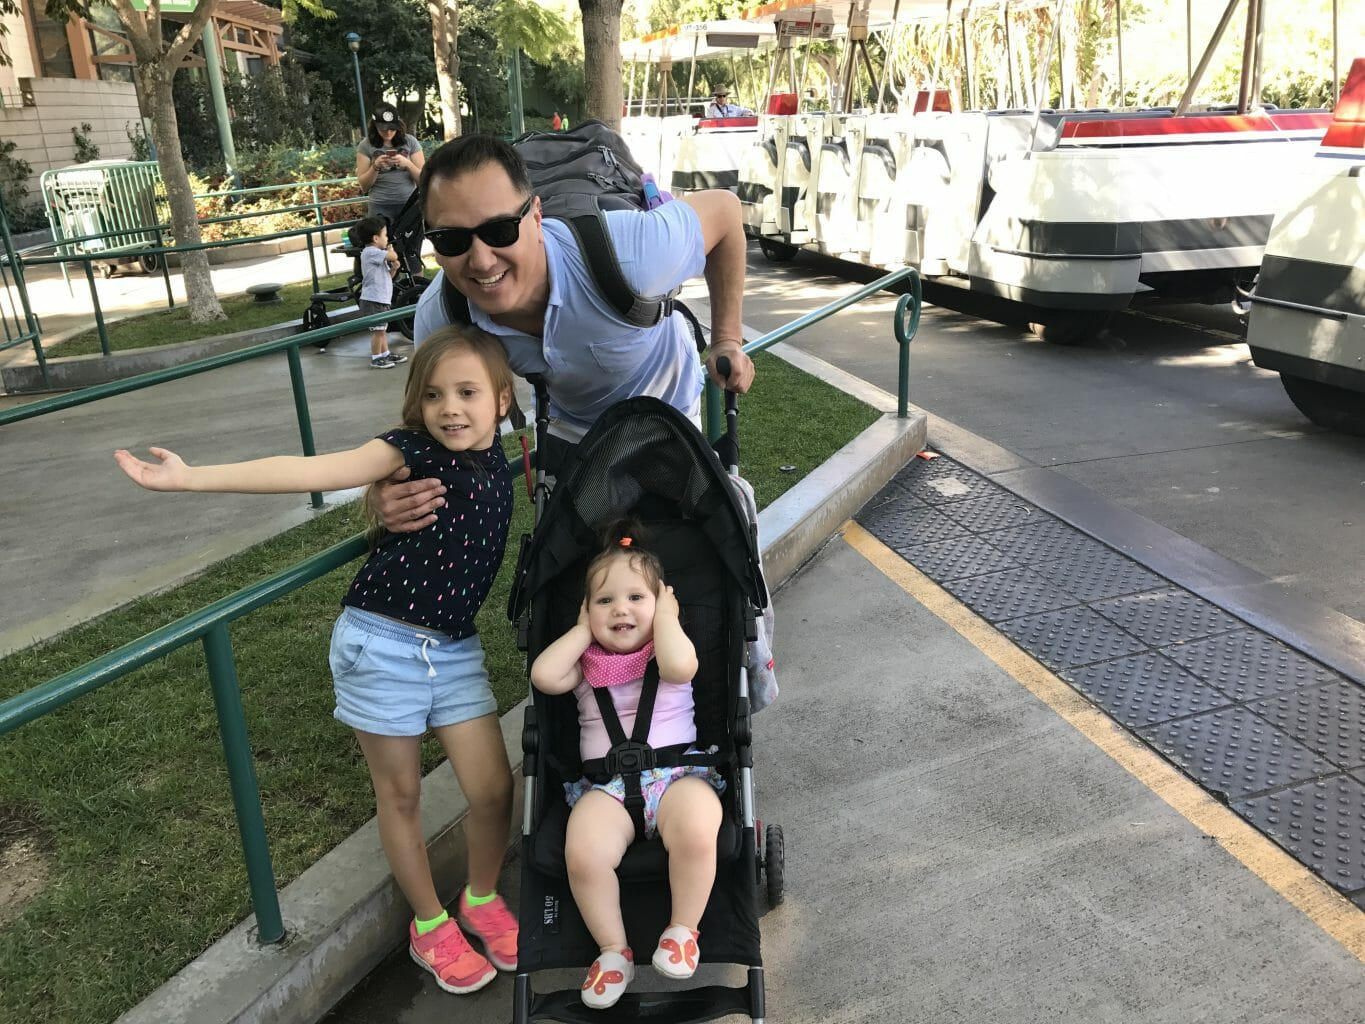 Our family waiting for the tram to take us in to Disney's Anaheim Resort.